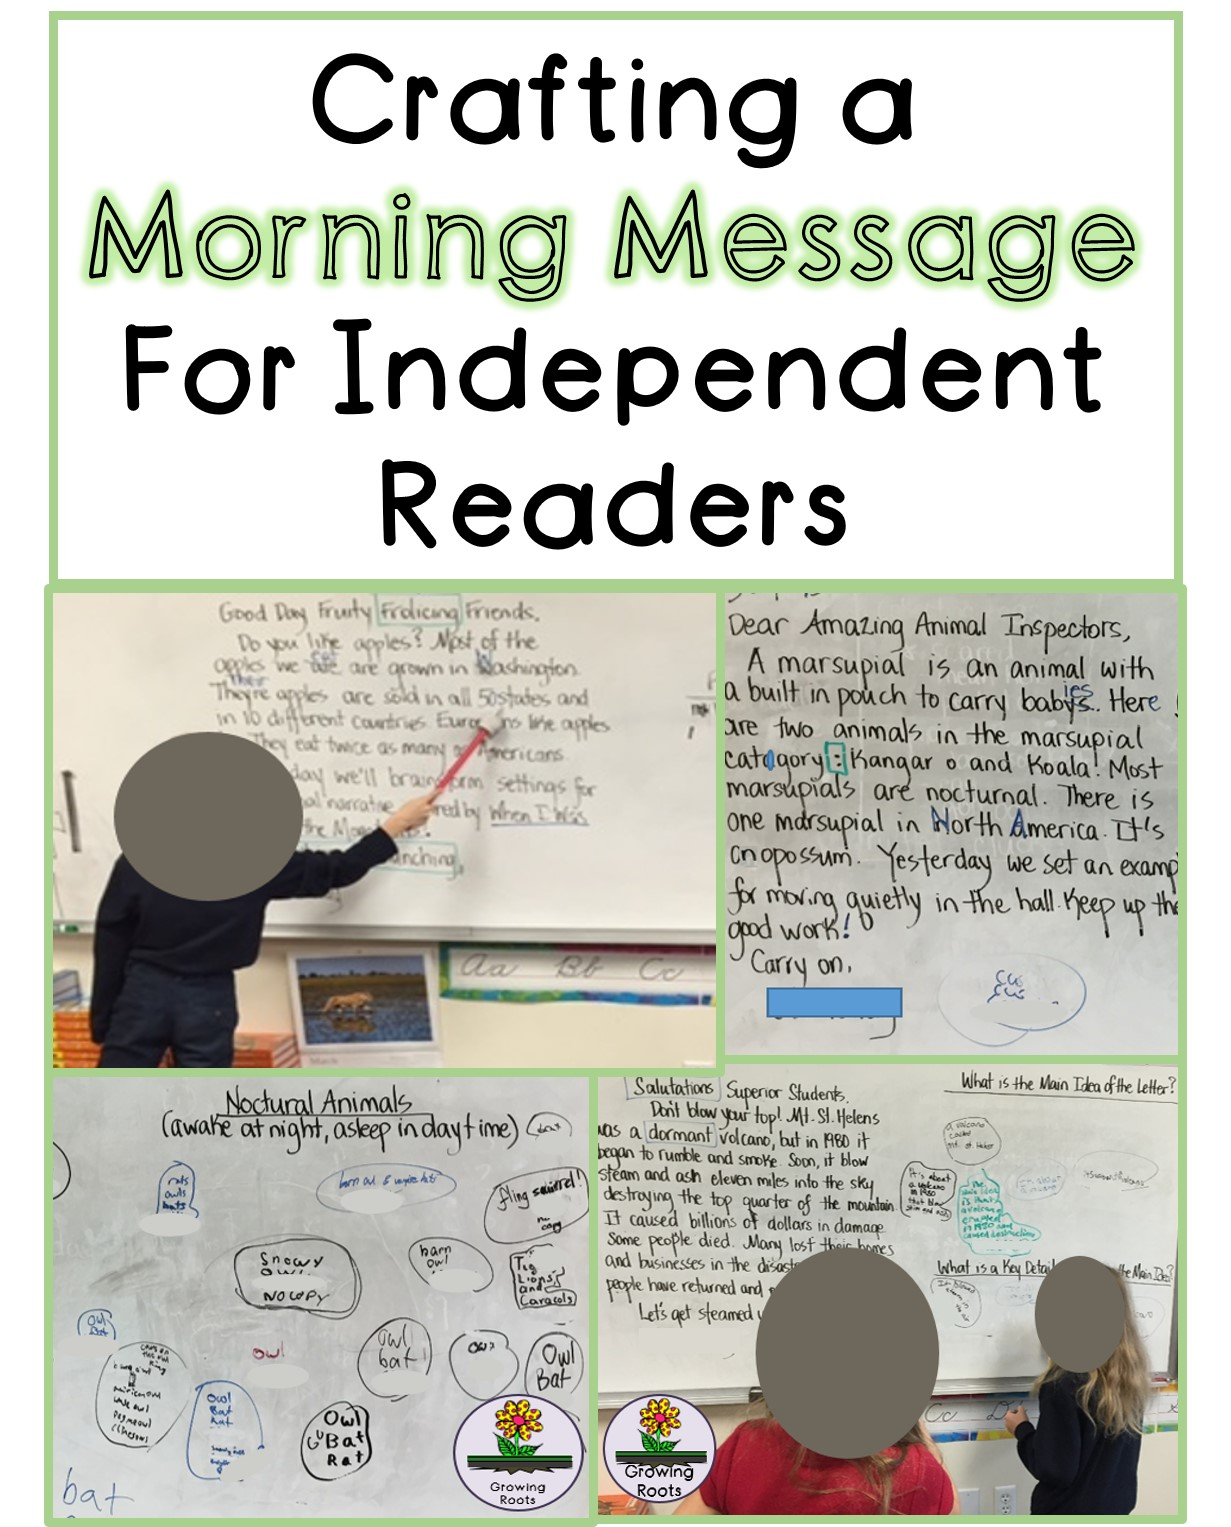 Growing roots morning messages for independent readers morning messages for independent readers m4hsunfo